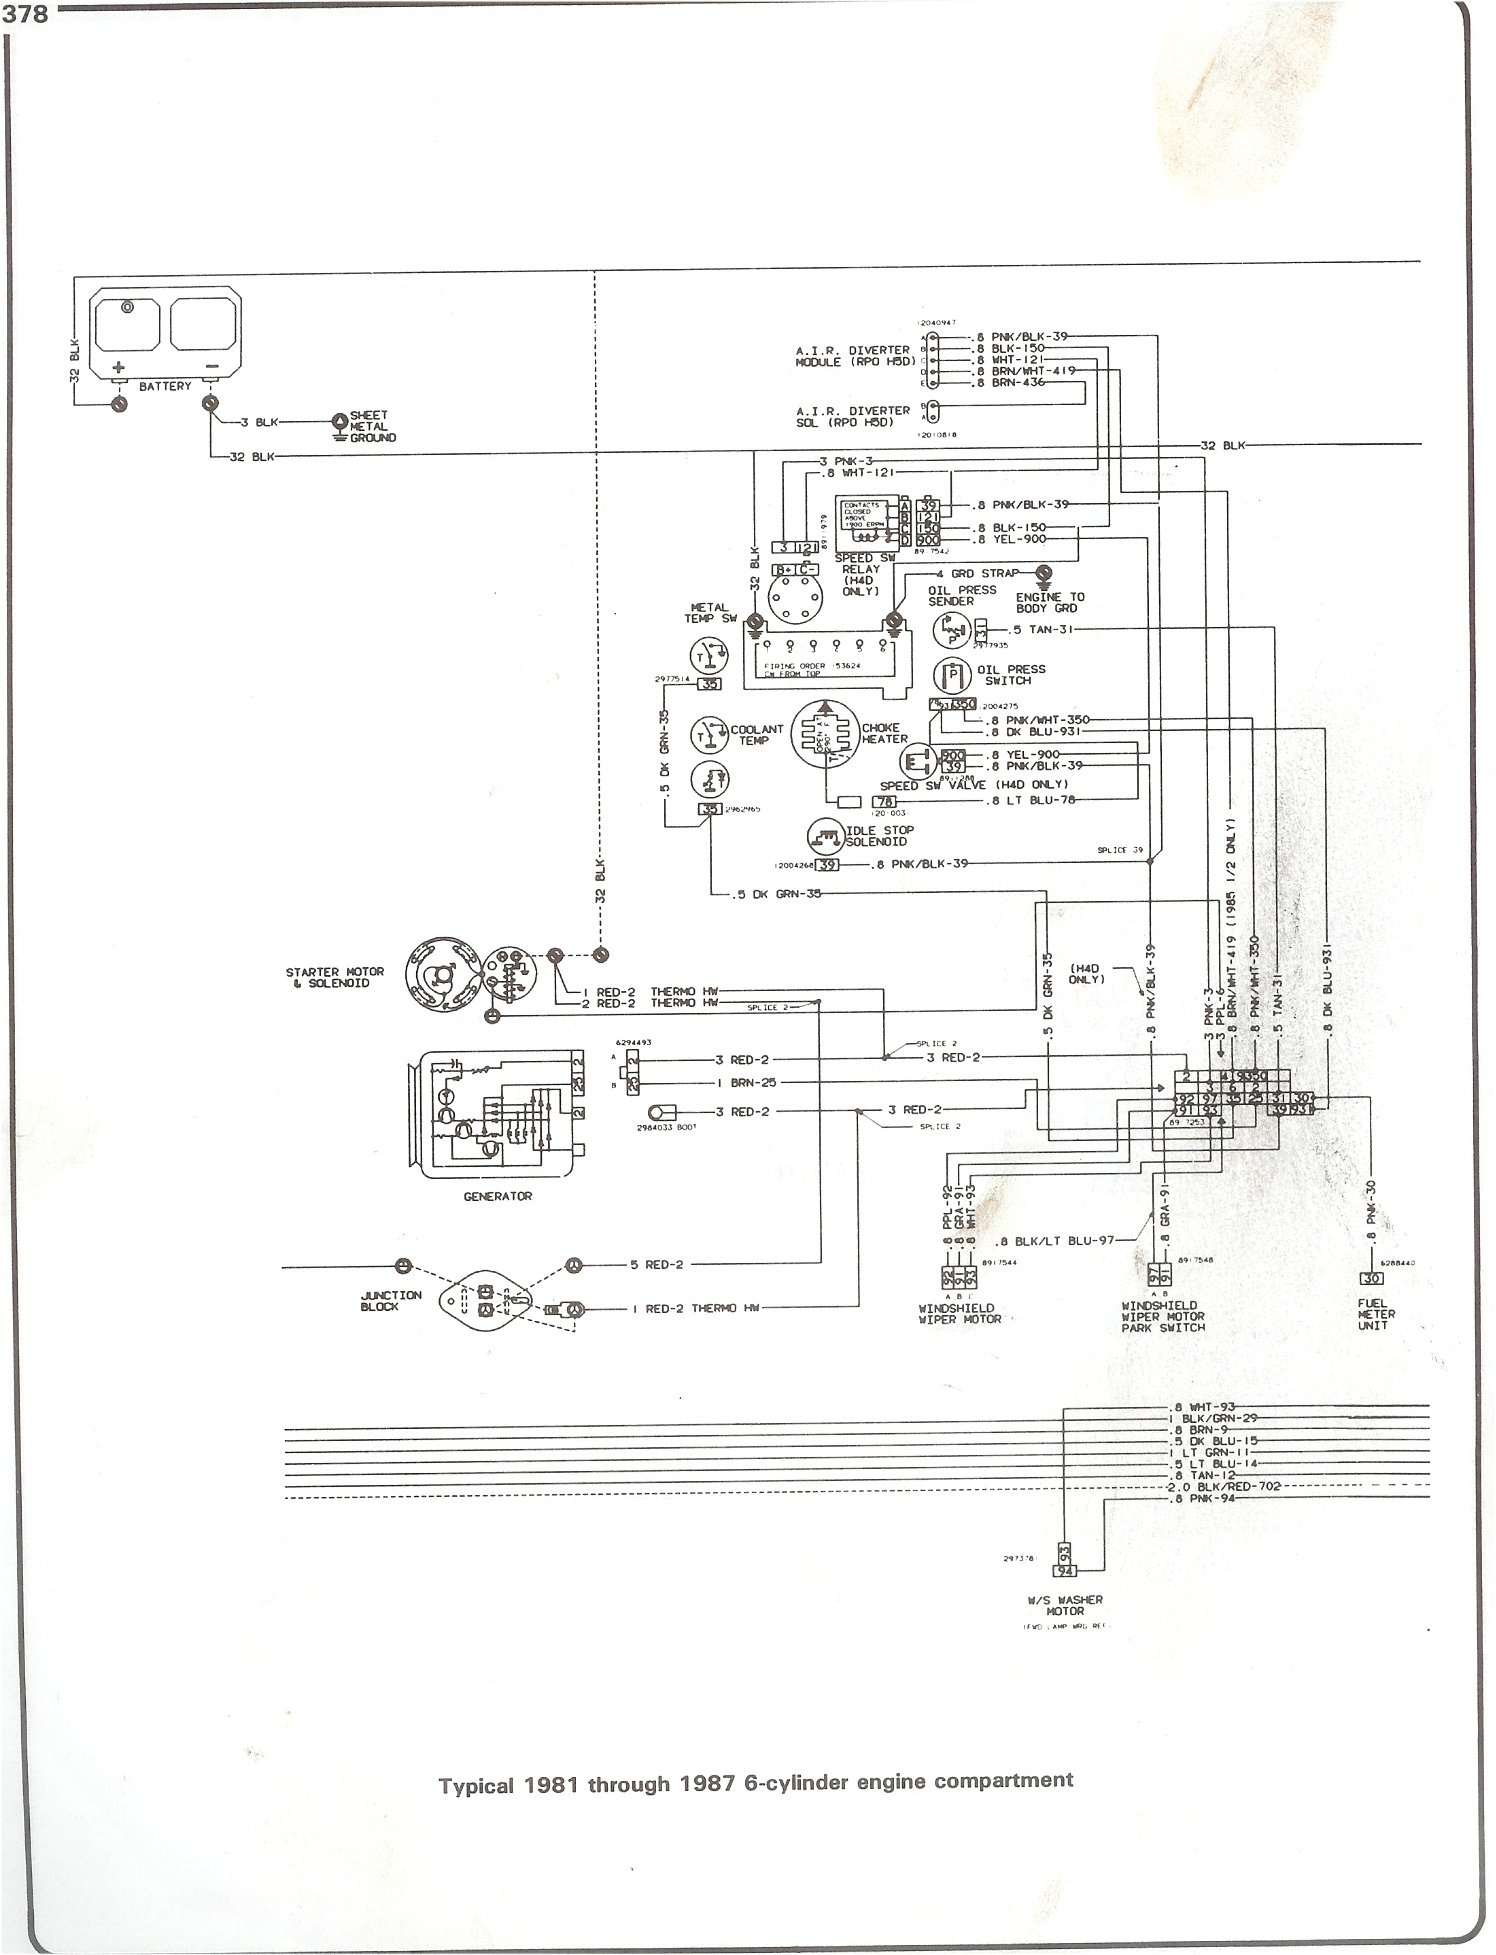 DIAGRAM] 73 87 Chevy Truck Wiring Diagram FULL Version HD Quality Wiring  Diagram - IT-DIAGRAM.INK3.ITInk3